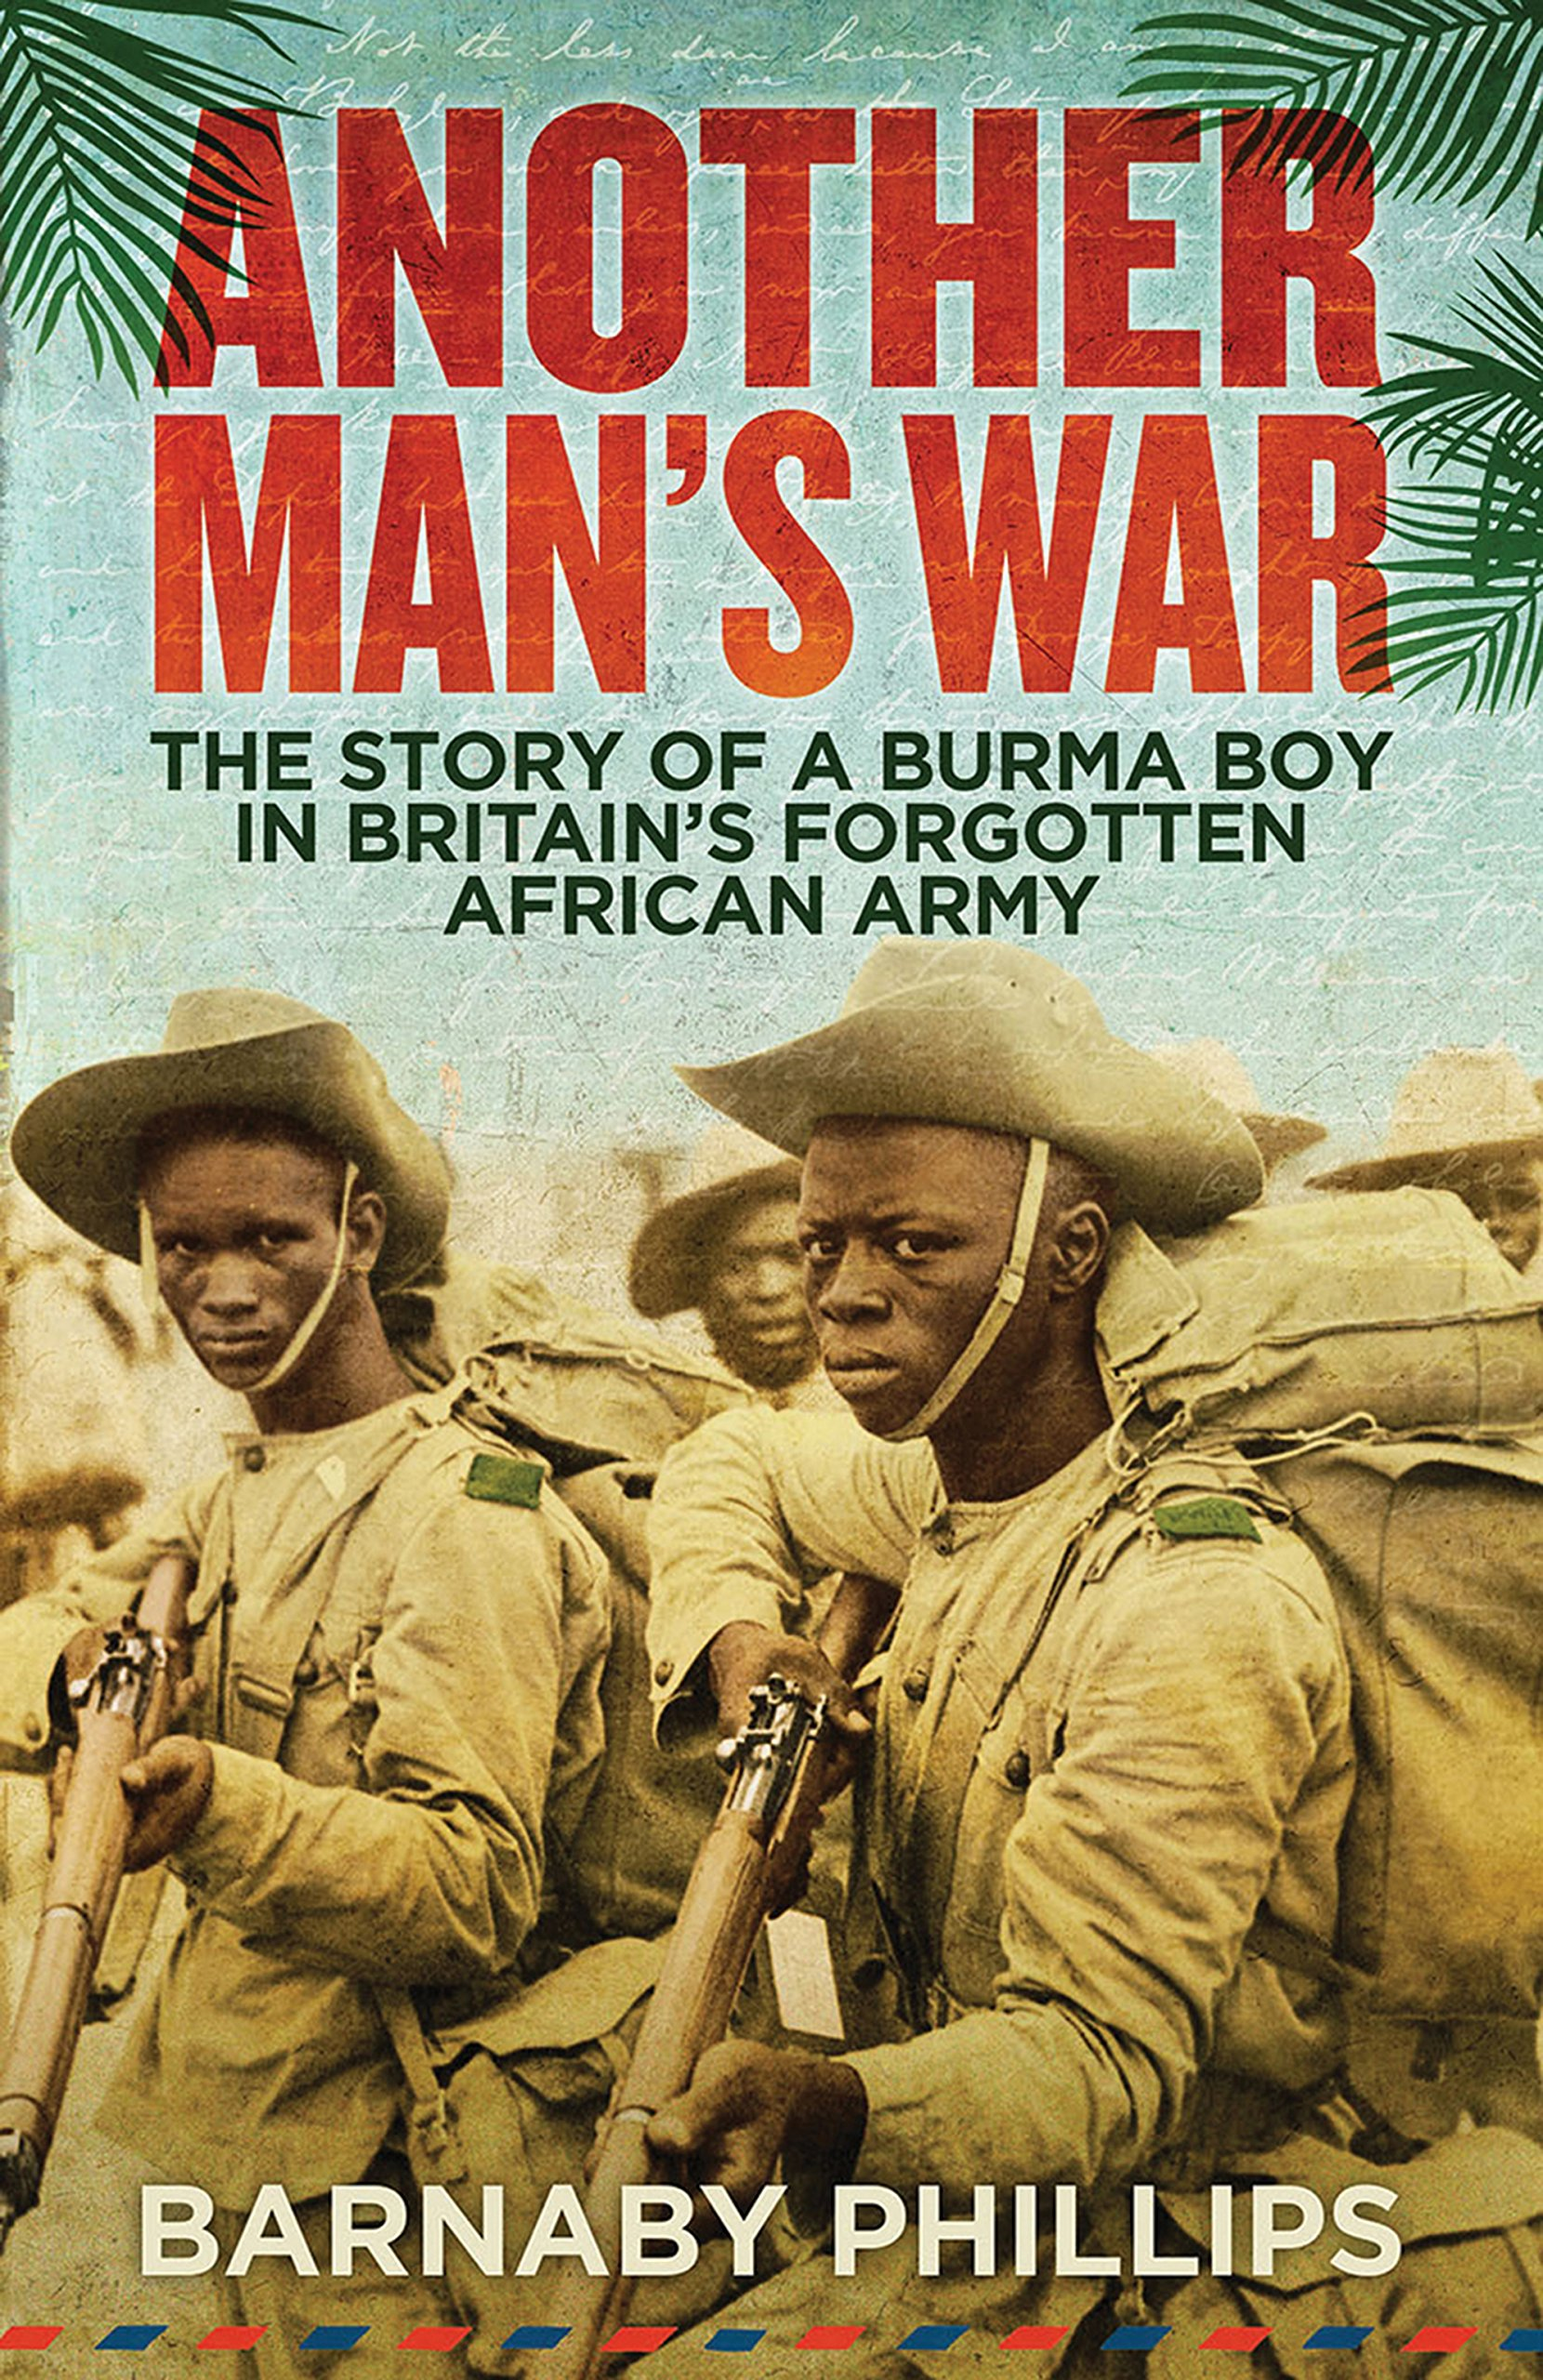 'Another man's war: the story of a Burma Boy in Britain's forgotten African army', by Barnaby Phillips